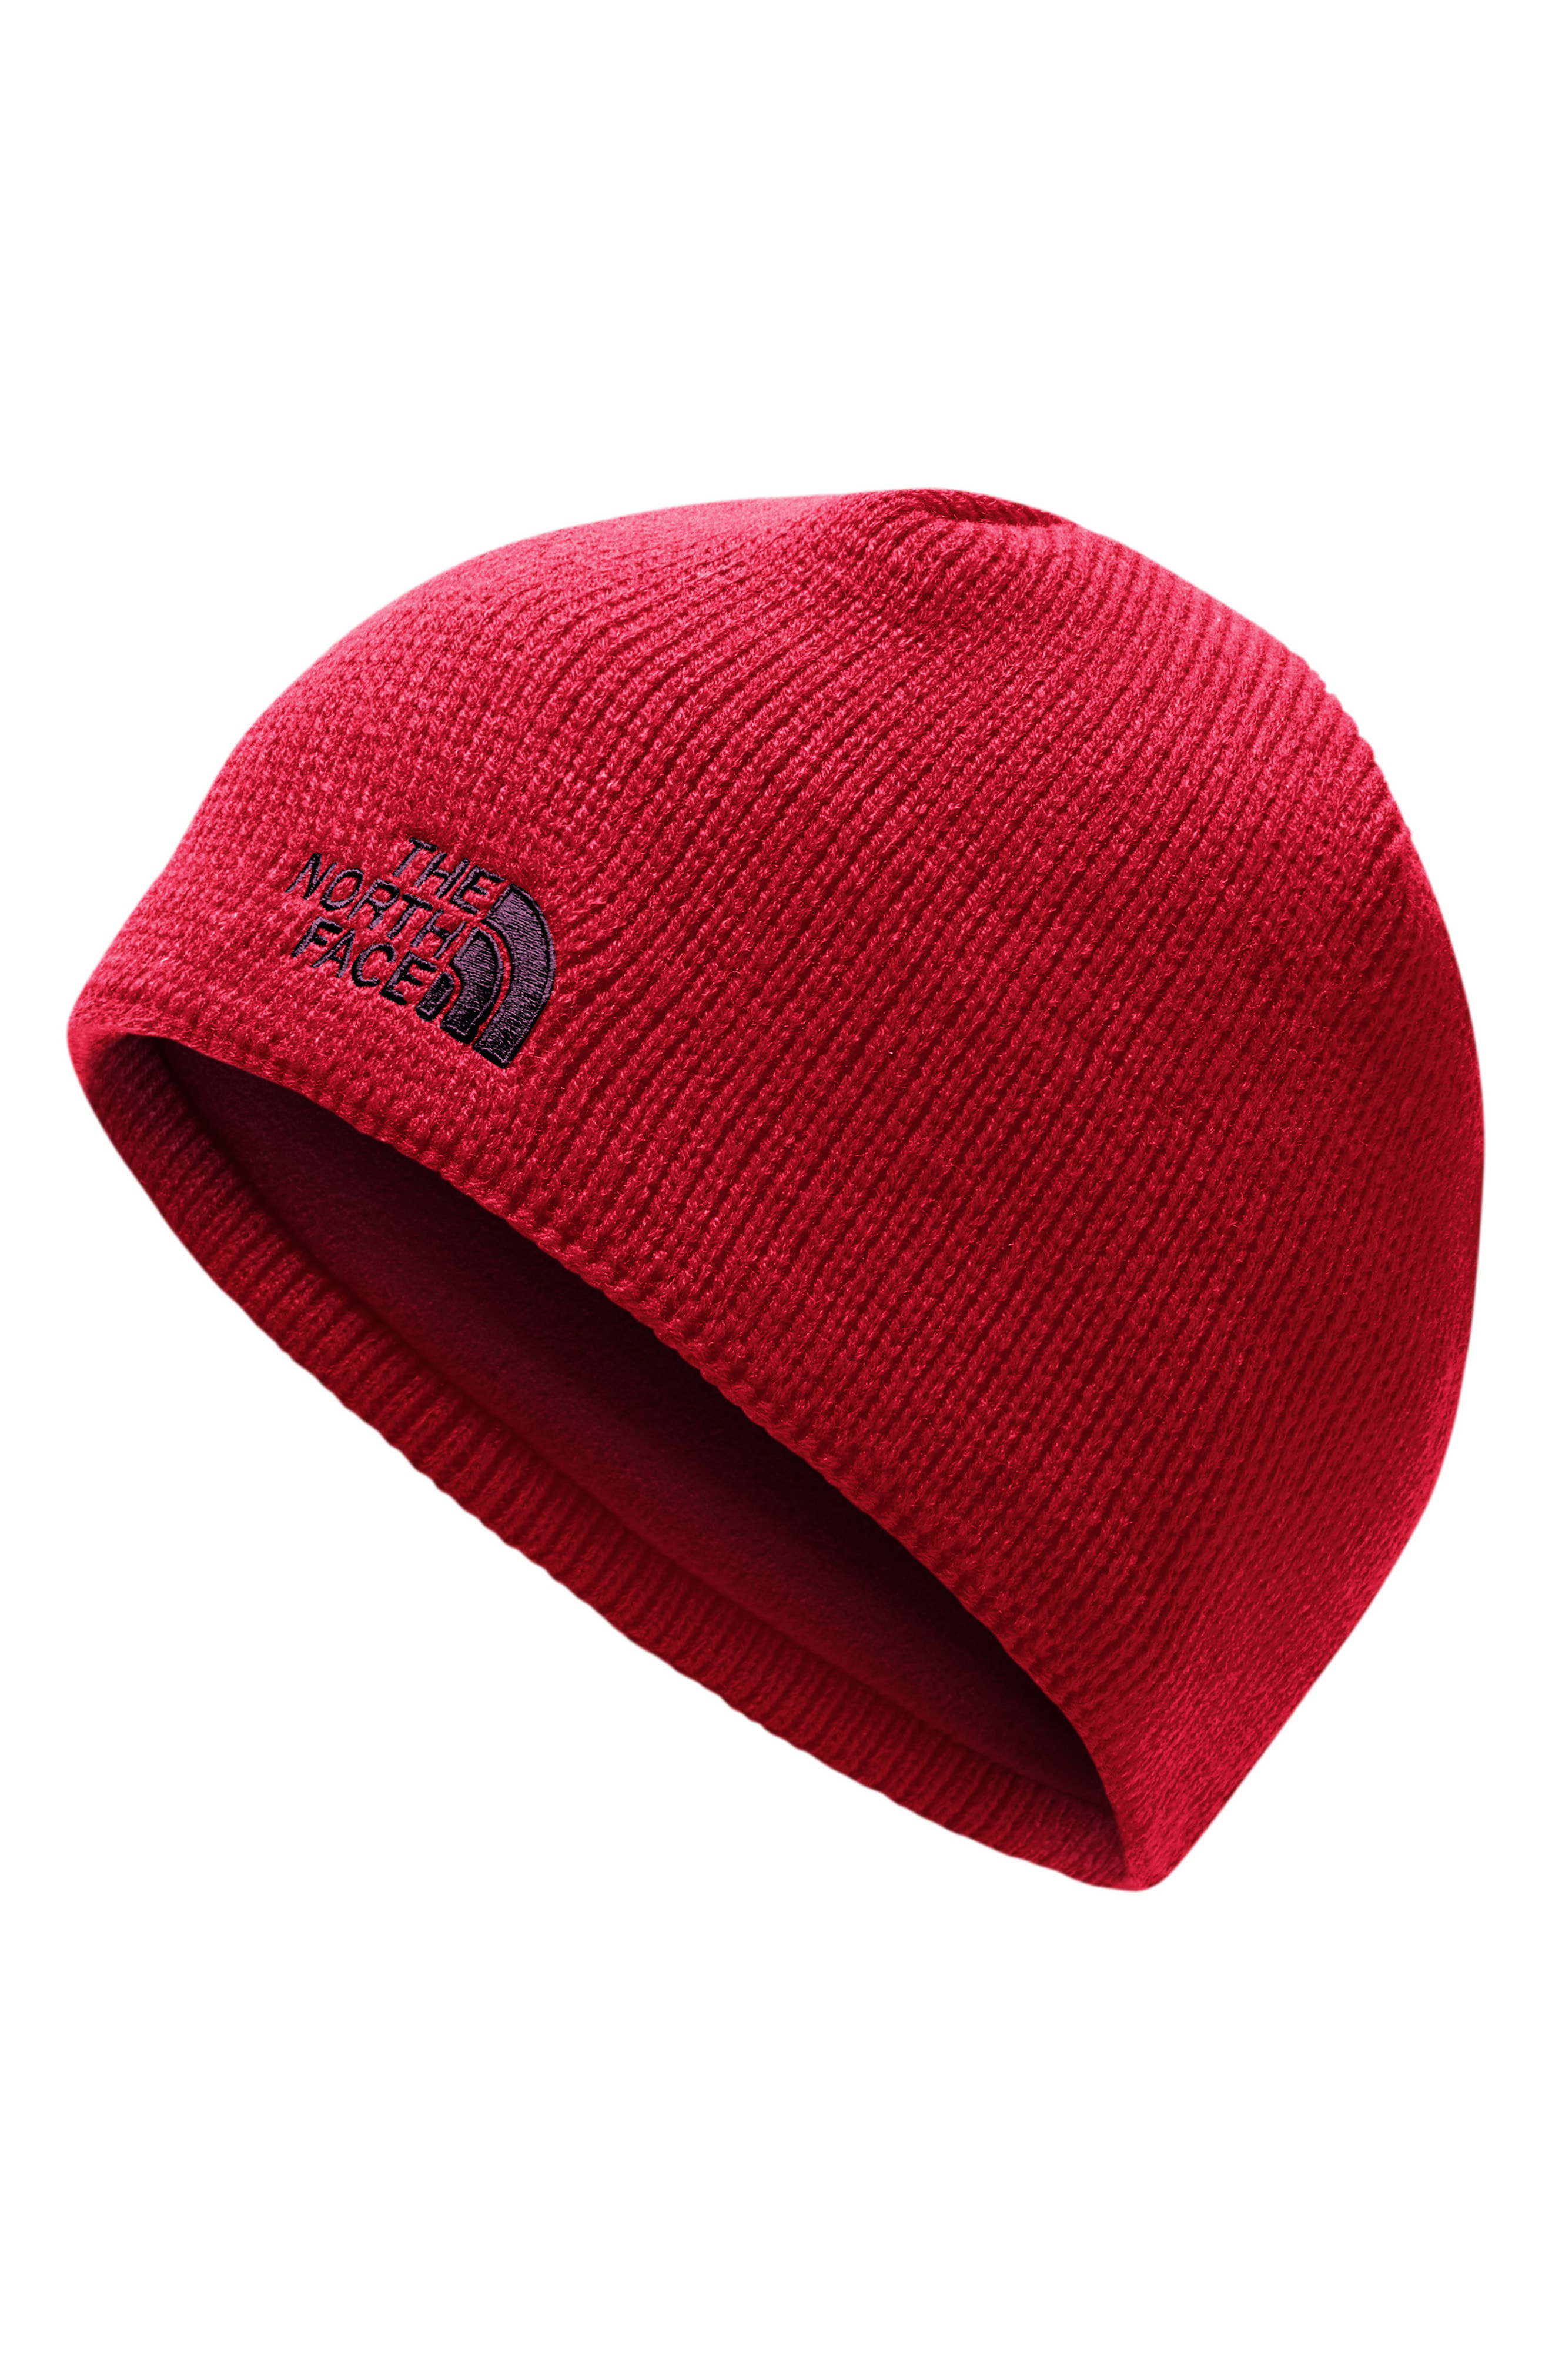 03017190d0528 The North Face Bones Fleece Lined Beanie - Red In Rage Red/ Fig ...